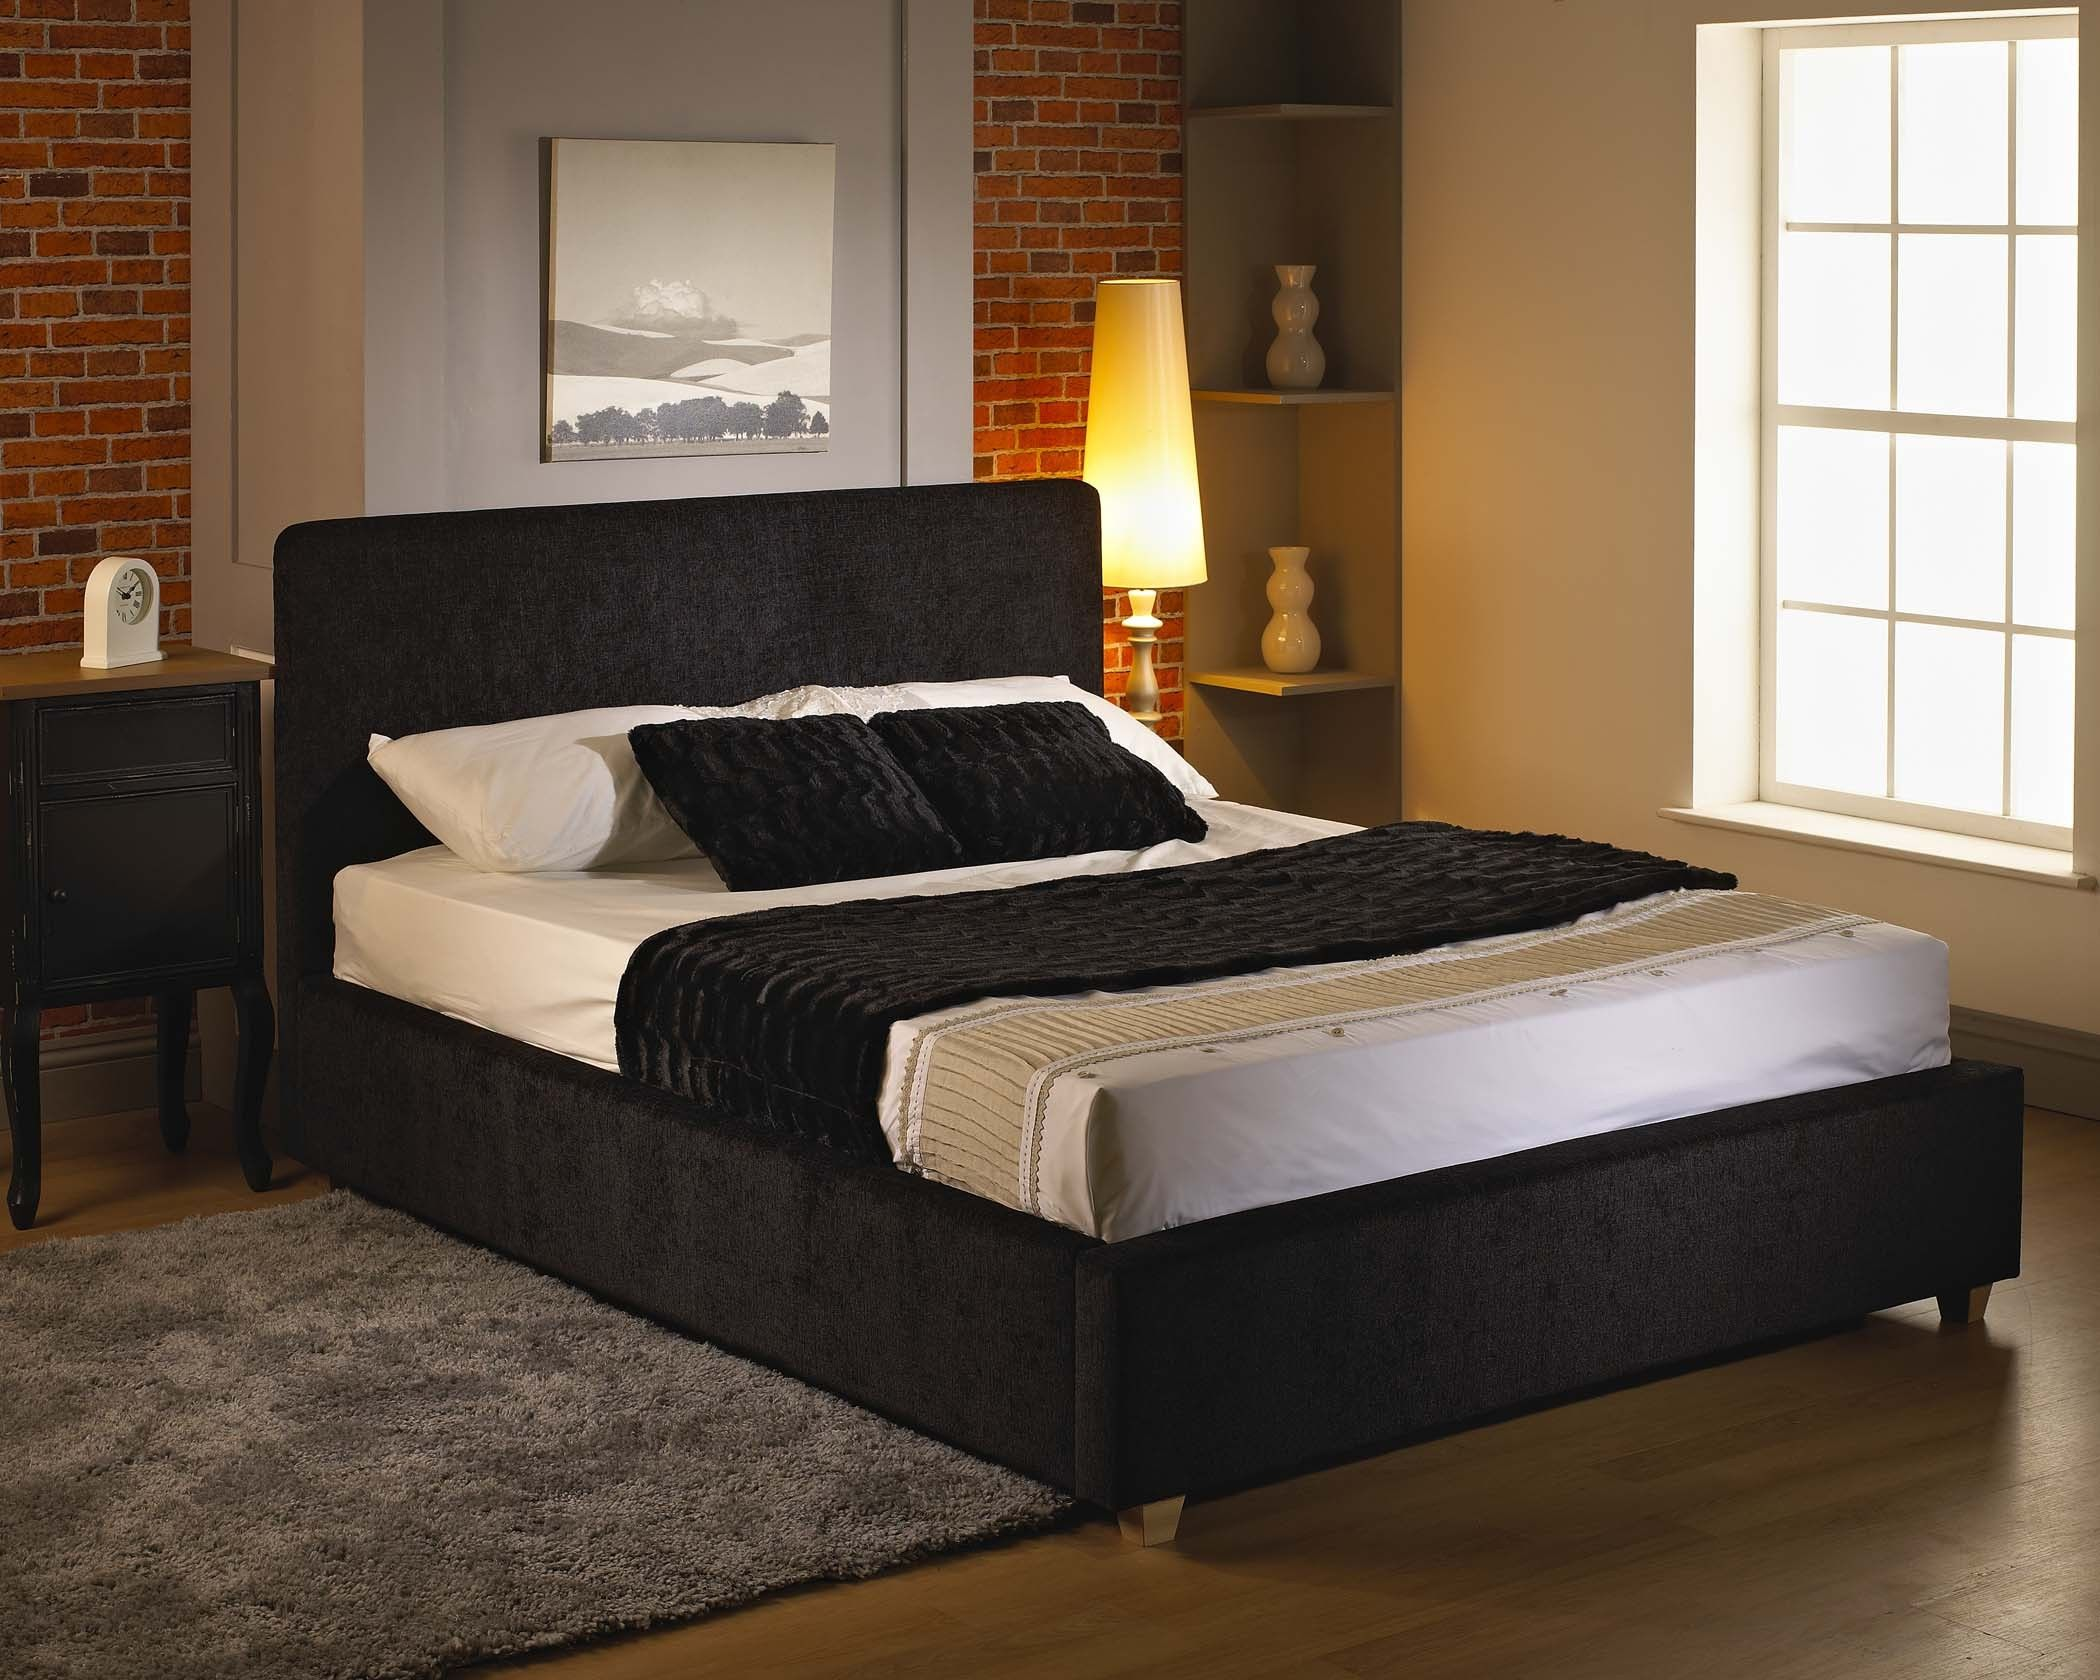 Rio 4ft 6 fabric double bed frame double beds for Divan double bed frame